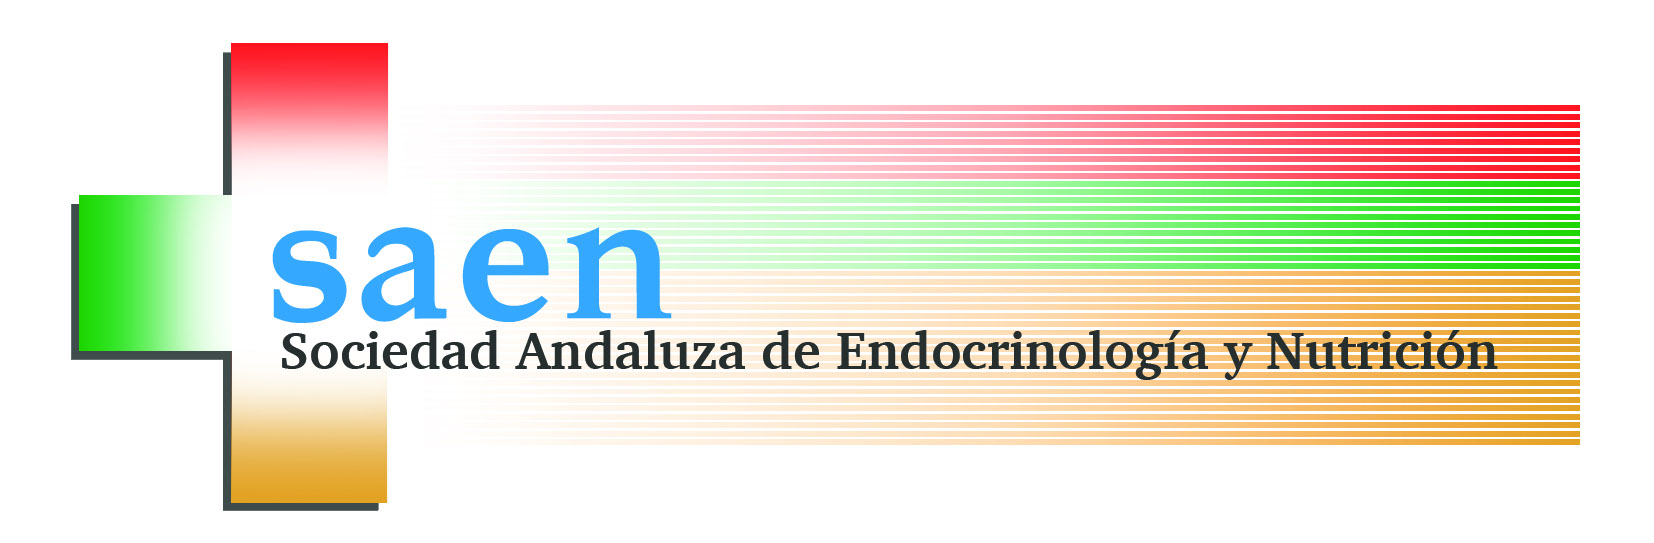 2015-06-30 40 Congreso SAEN noticia